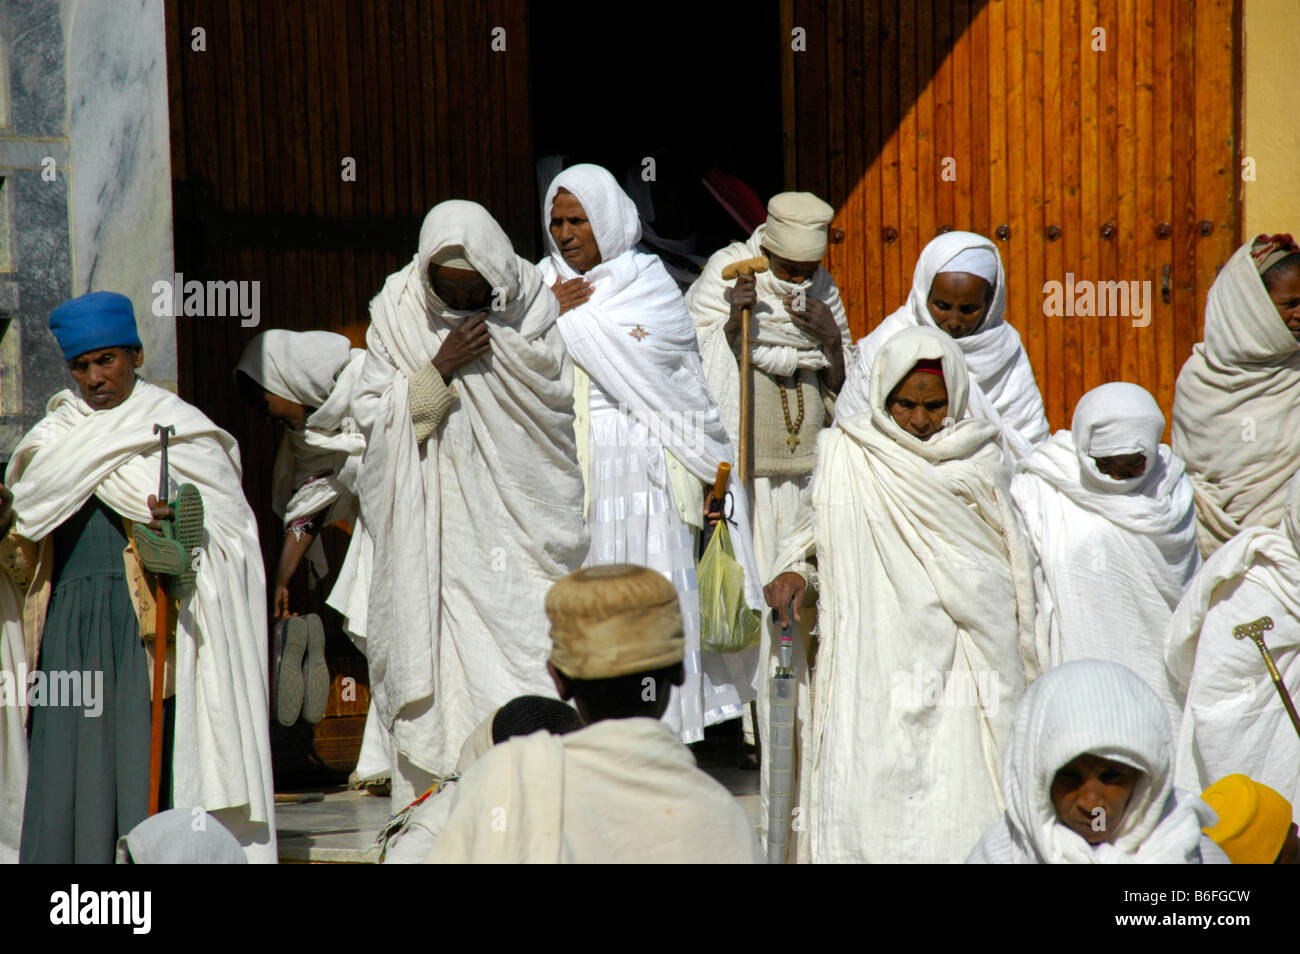 Believers of the Ethiopian Orthodox Church covered in white cloths in front of the new cathedral, Aksum, Ethiopia, - Stock Image